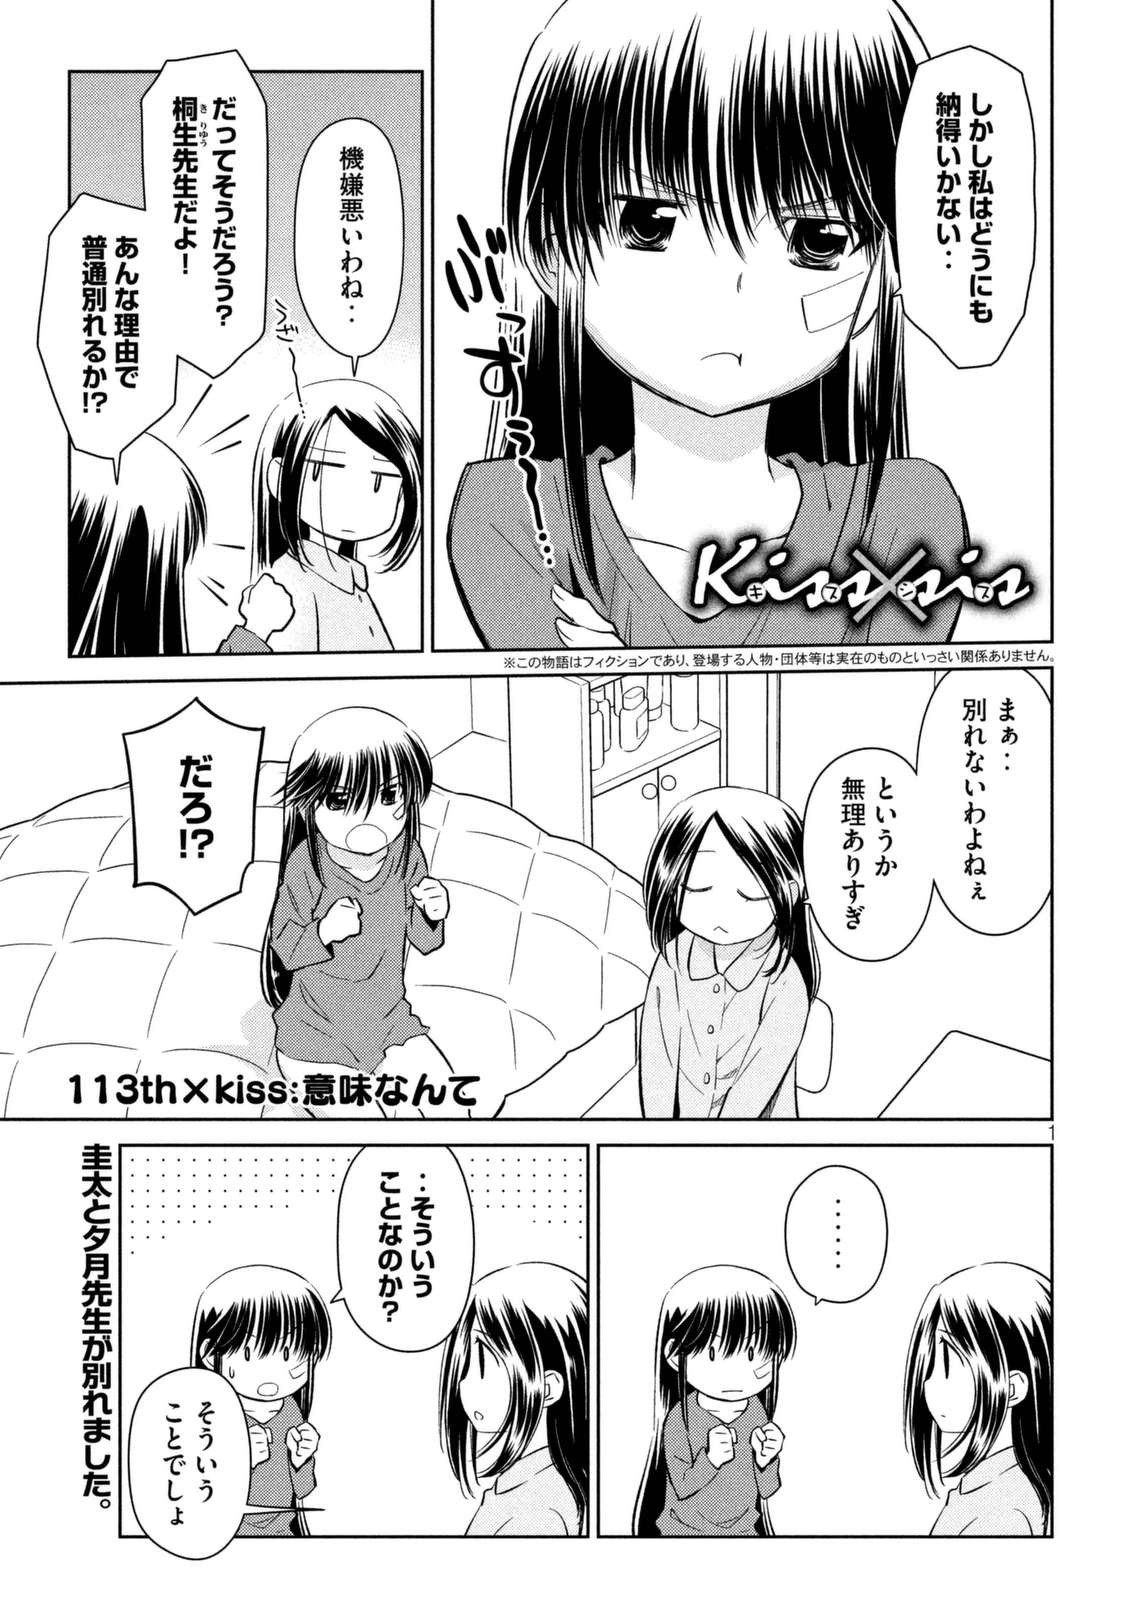 Sen Manga,Kiss x Sis 113 raw,Loading Kiss x Sis | Chapter  113 | Page 1 .....